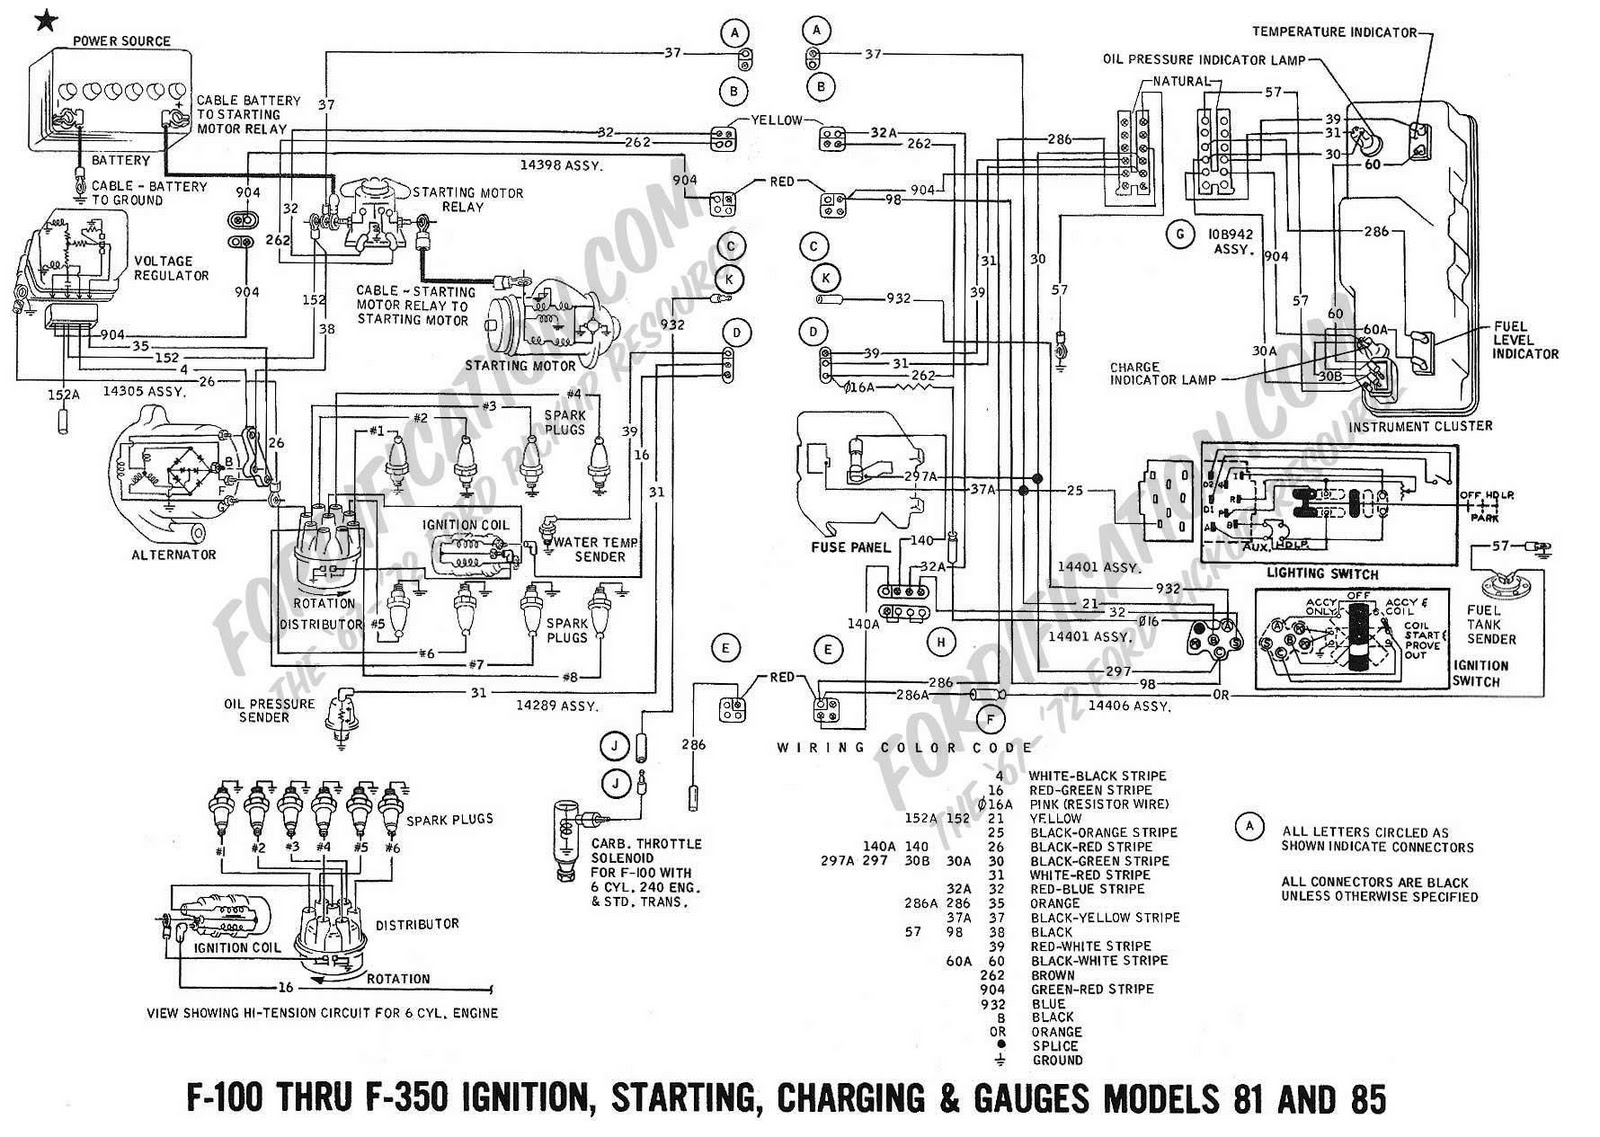 1968 ford galaxie wiring diagram wiring diagram1968 ford galaxie wiring diagram [ 1600 x 1137 Pixel ]